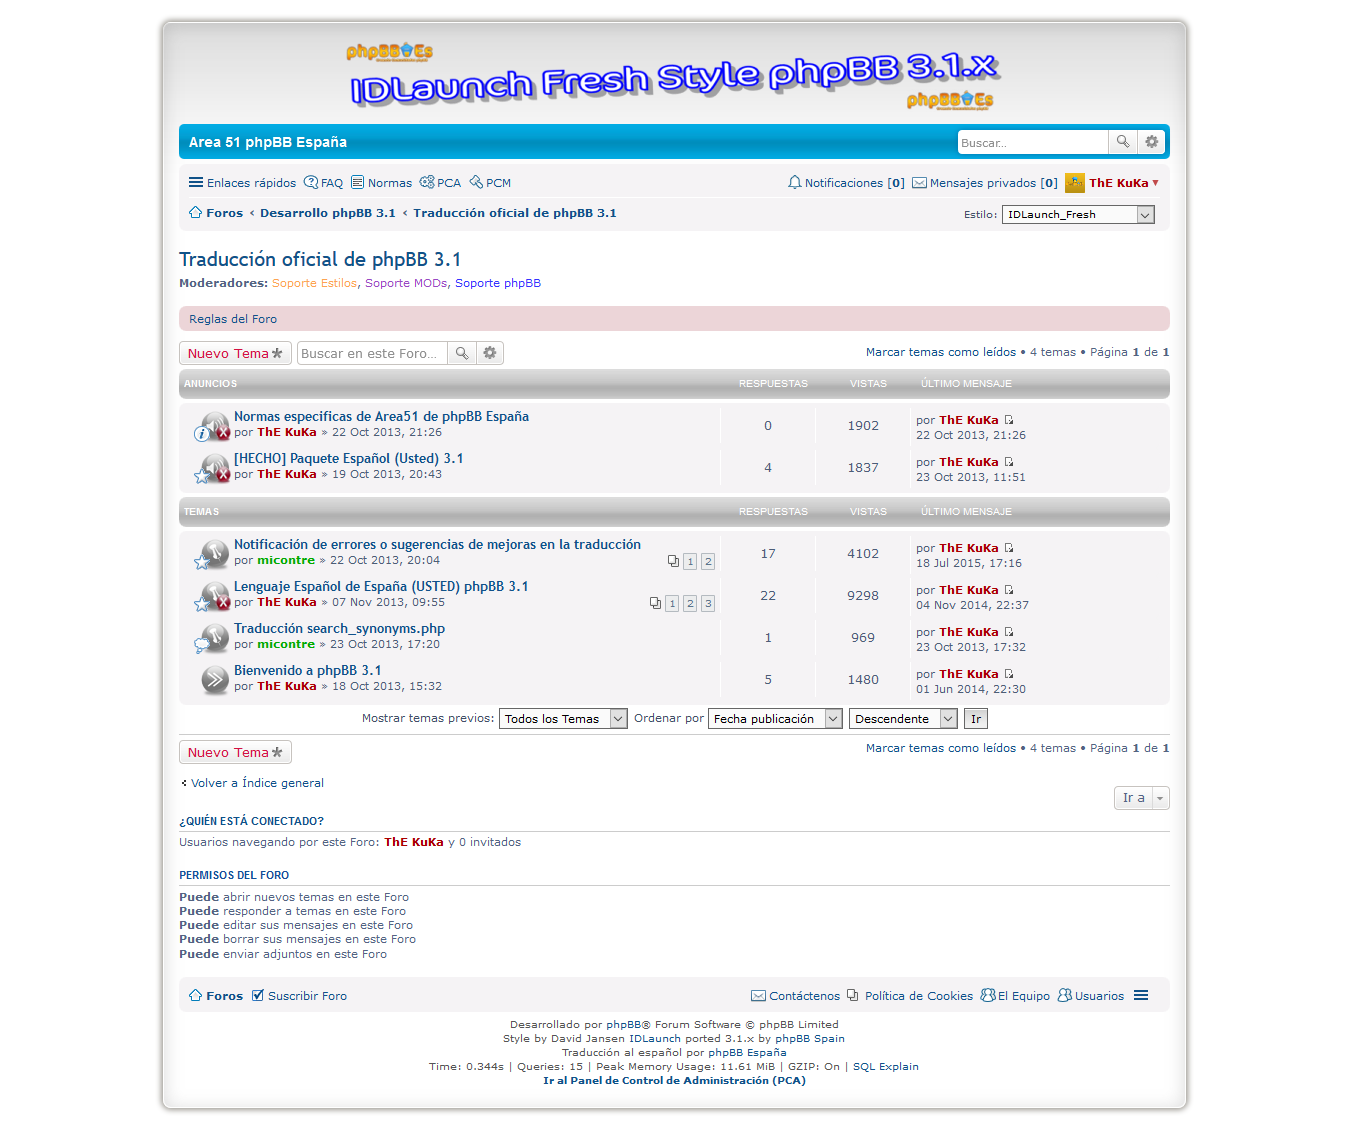 phpBB Spain